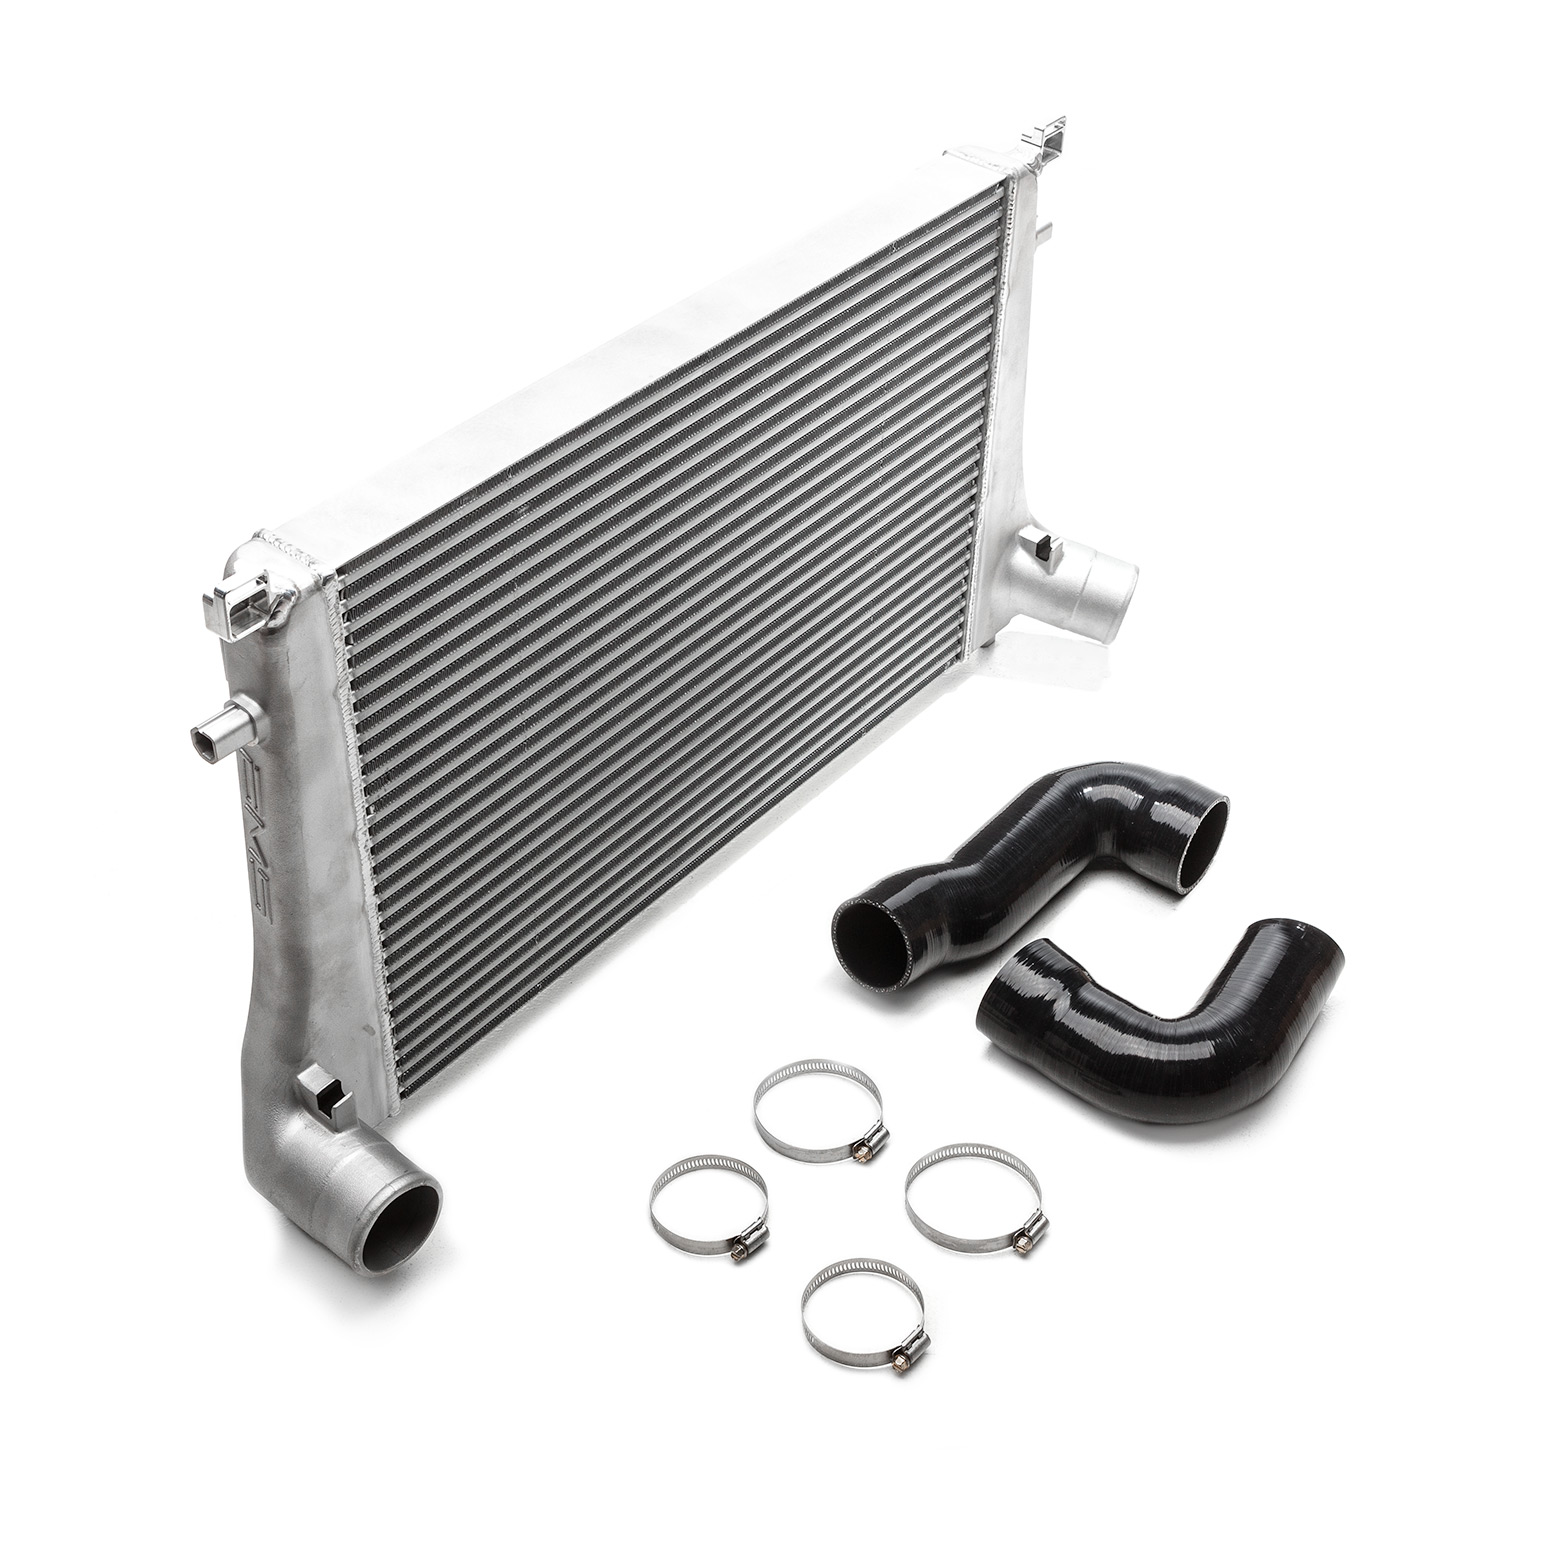 Volkswagen AMS Performance Front Mount Intercooler GTI (Mk7) 2015-2018 USDM, Golf R (Mk7) 2015-2018 USDM